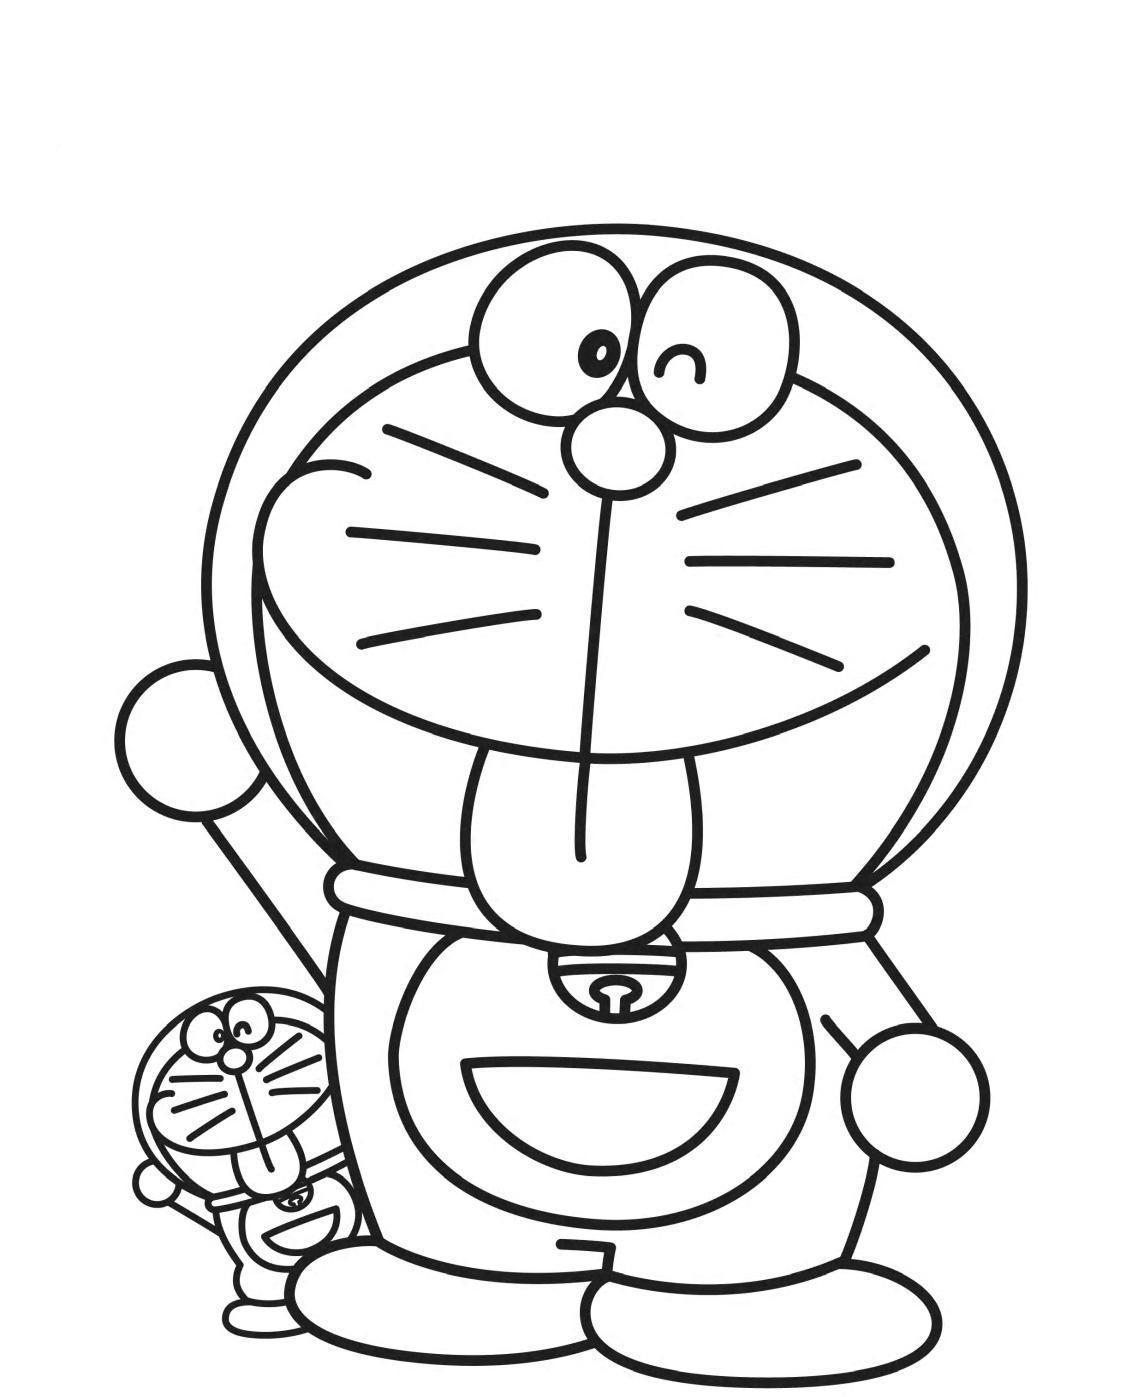 Doraemon Coloring Pages Check More At Pilular Doraemon Coloring Pages